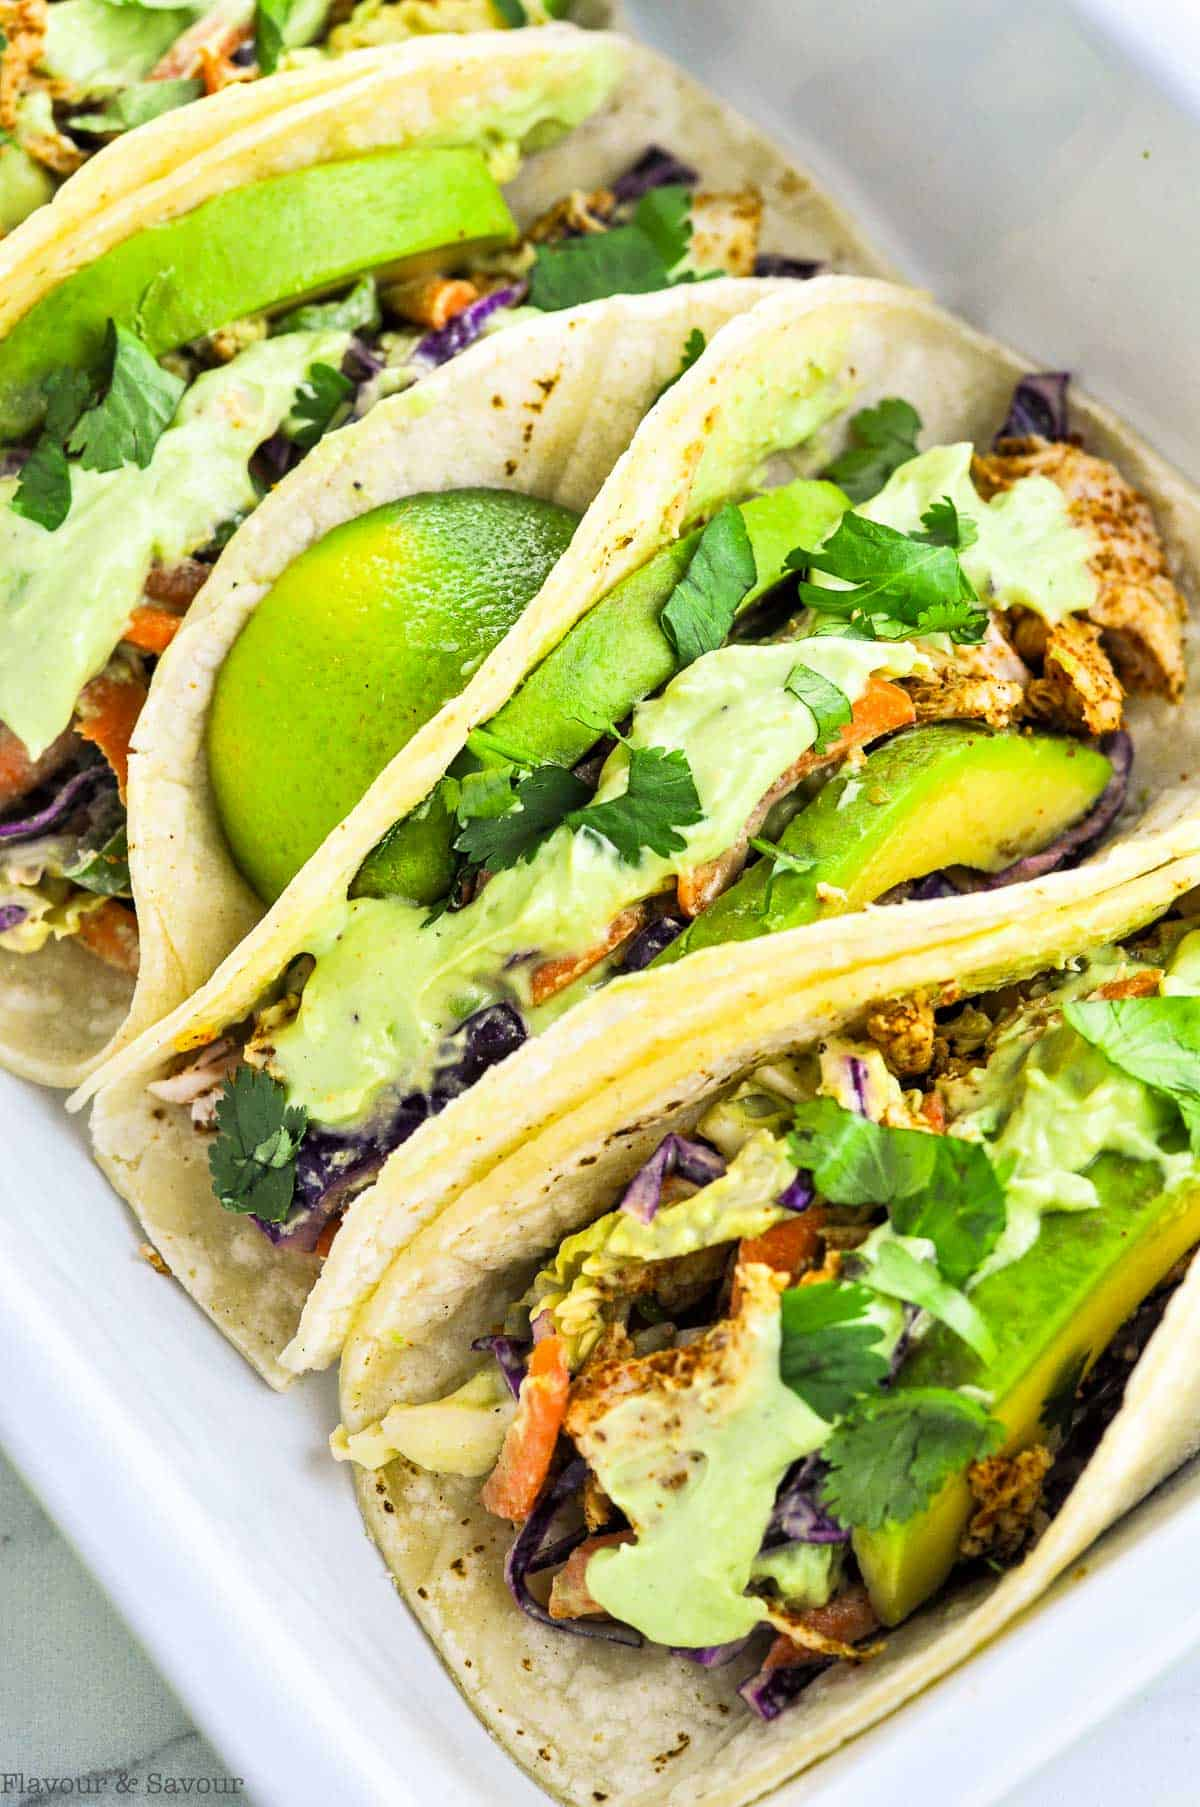 Close up view of Shredded Chicken Tacos with Cilantro Lime Slaw